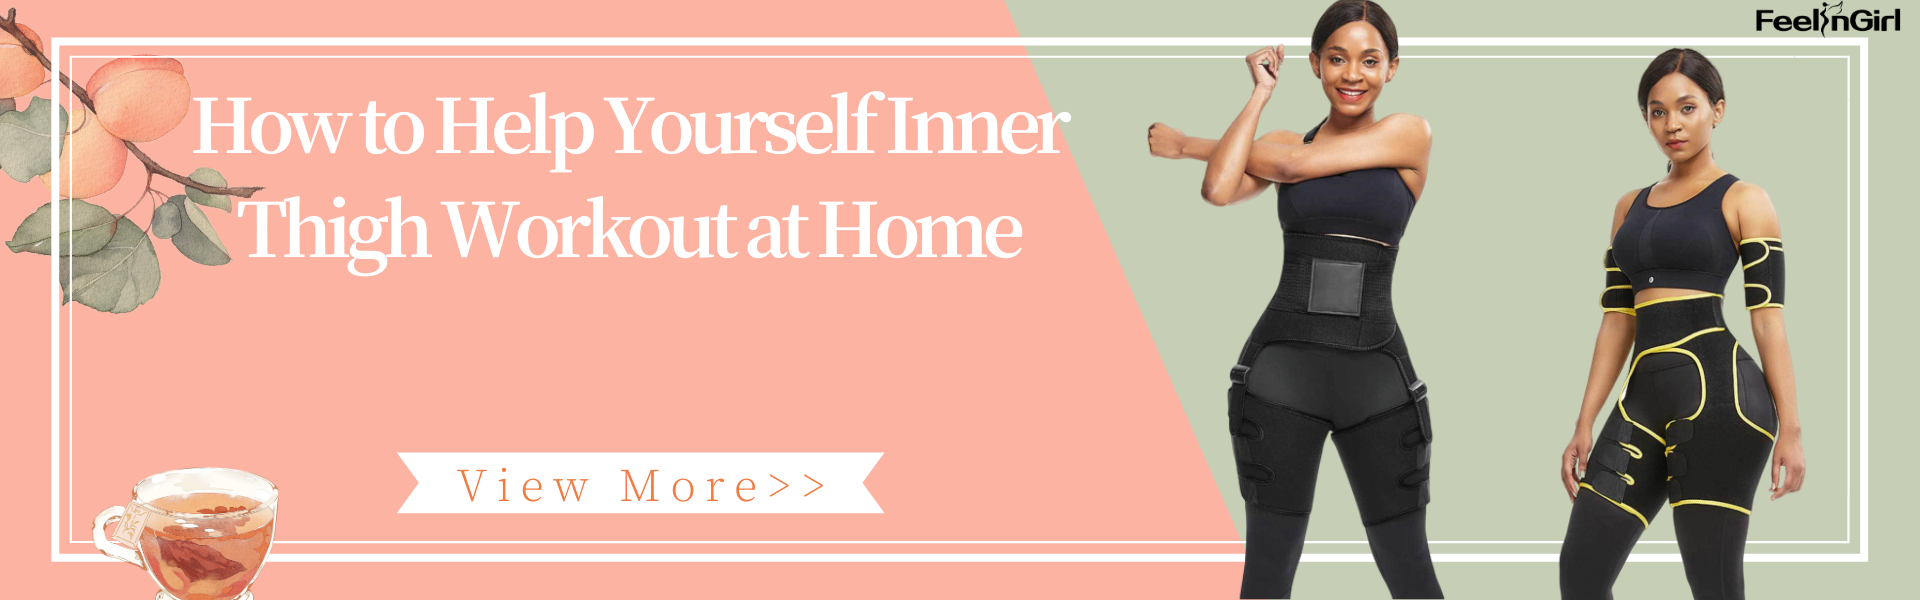 How to Help Yourself Inner Thigh Workout at Home